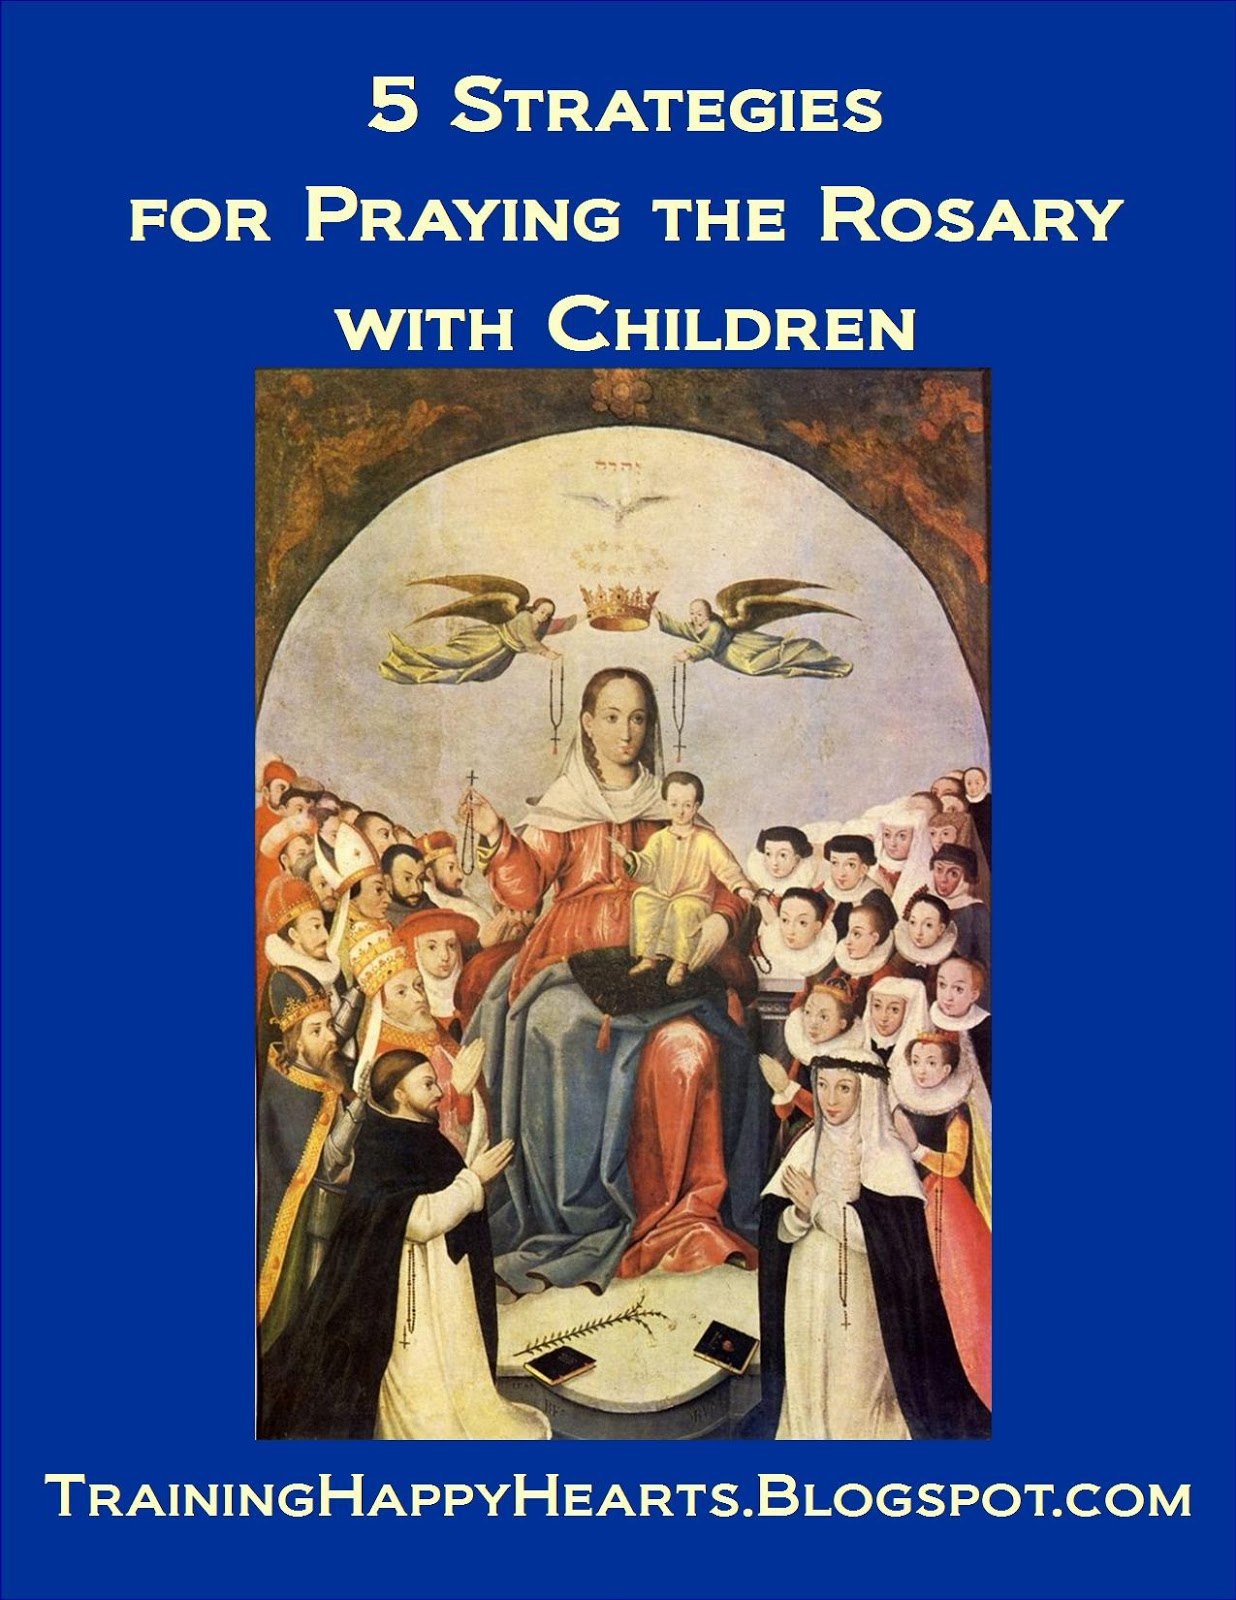 http://traininghappyhearts.blogspot.com/2014/10/if-i-can-get-my-children-to-pray-rosary.html